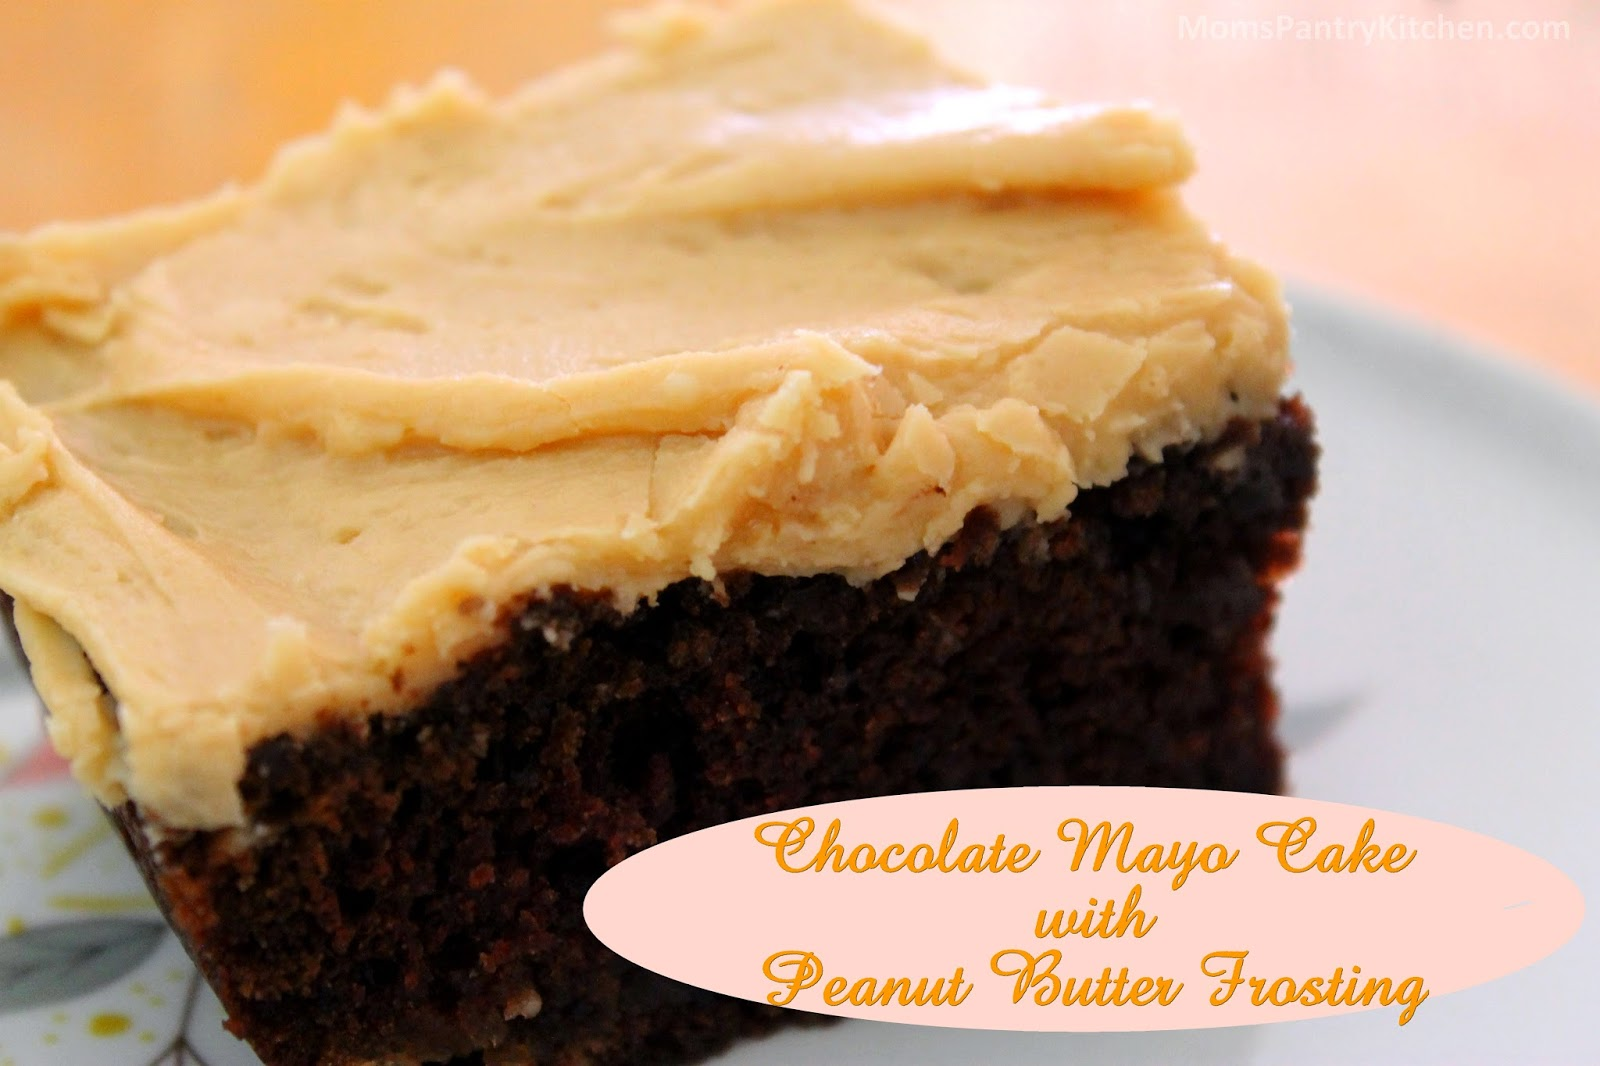 Moms Pantry: Recipe: Chocolate Mayo Cake with Peanut Butter Frosting